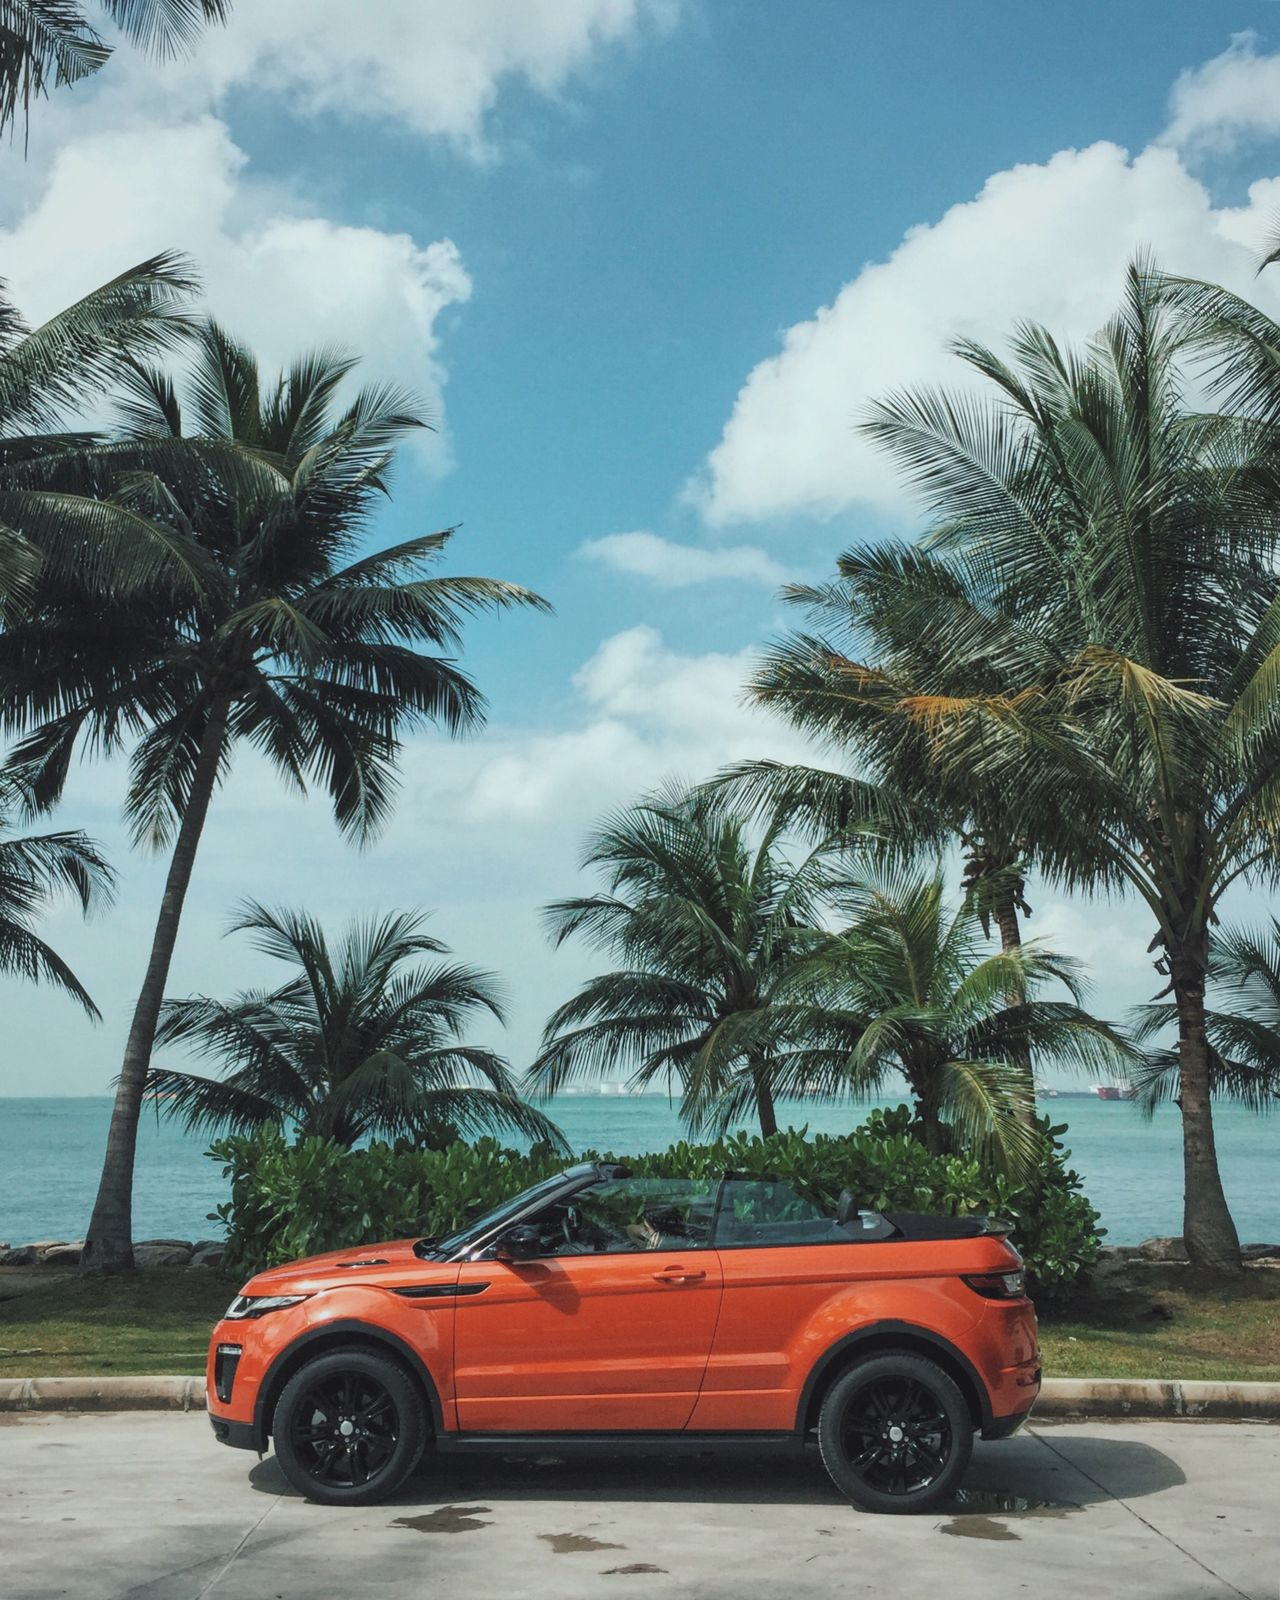 Asian beach car cloud - sky day evoque evoque convertible Land Rover land vehicle Nature no people outdoors Palm tree Sentosa Singapore sky summer The City Light Transportation Tree vacation